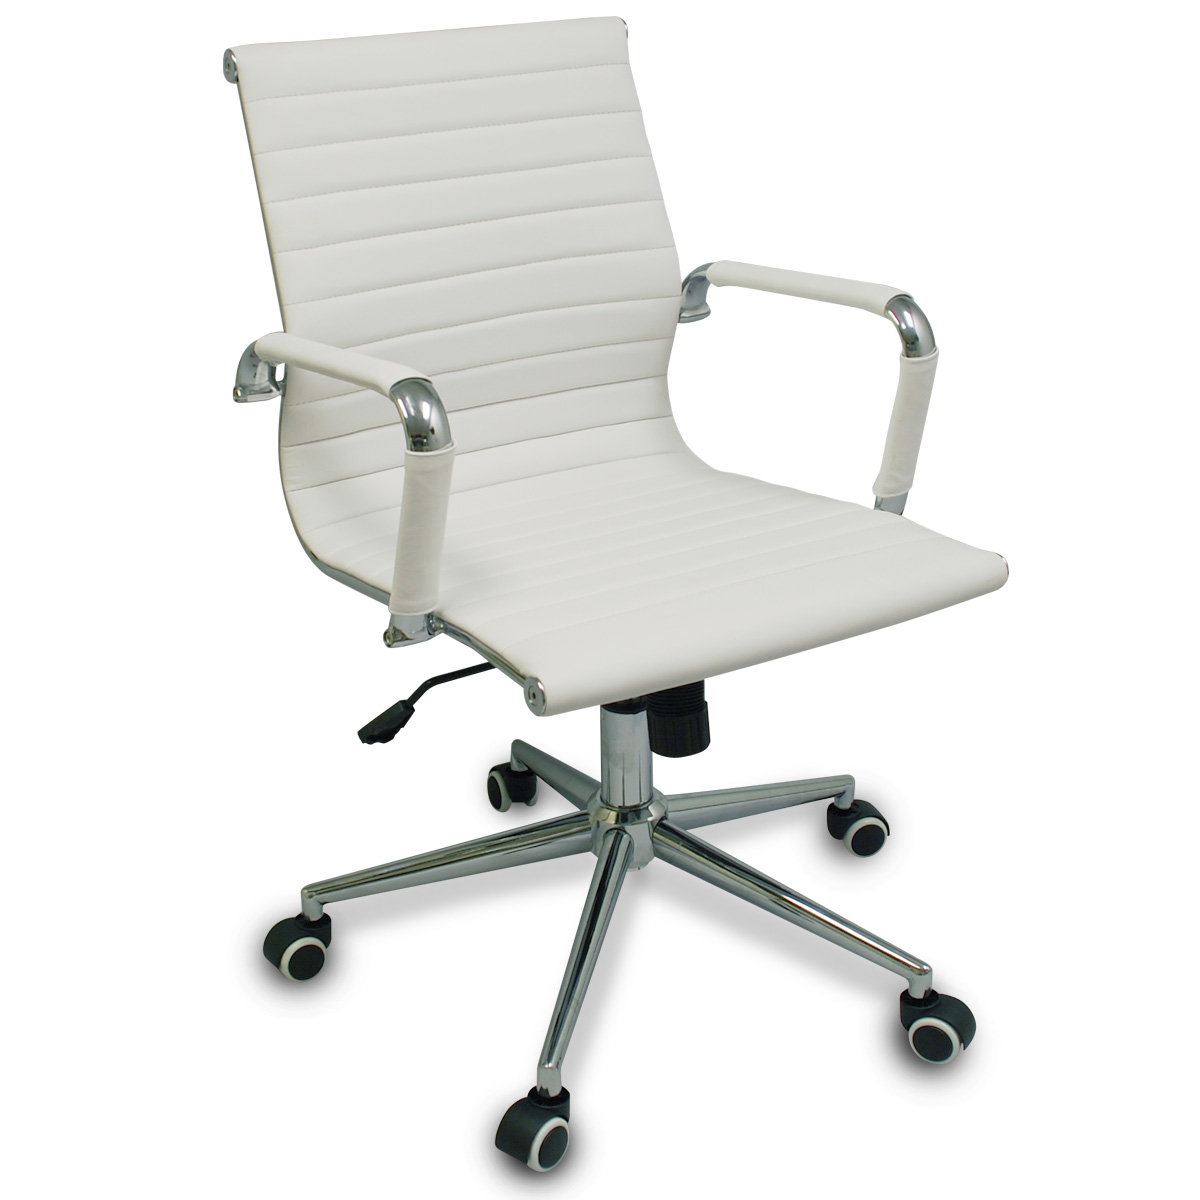 Chair Casters For Hardwood Floors New White Modern Ribbed Office Chair With Specialized